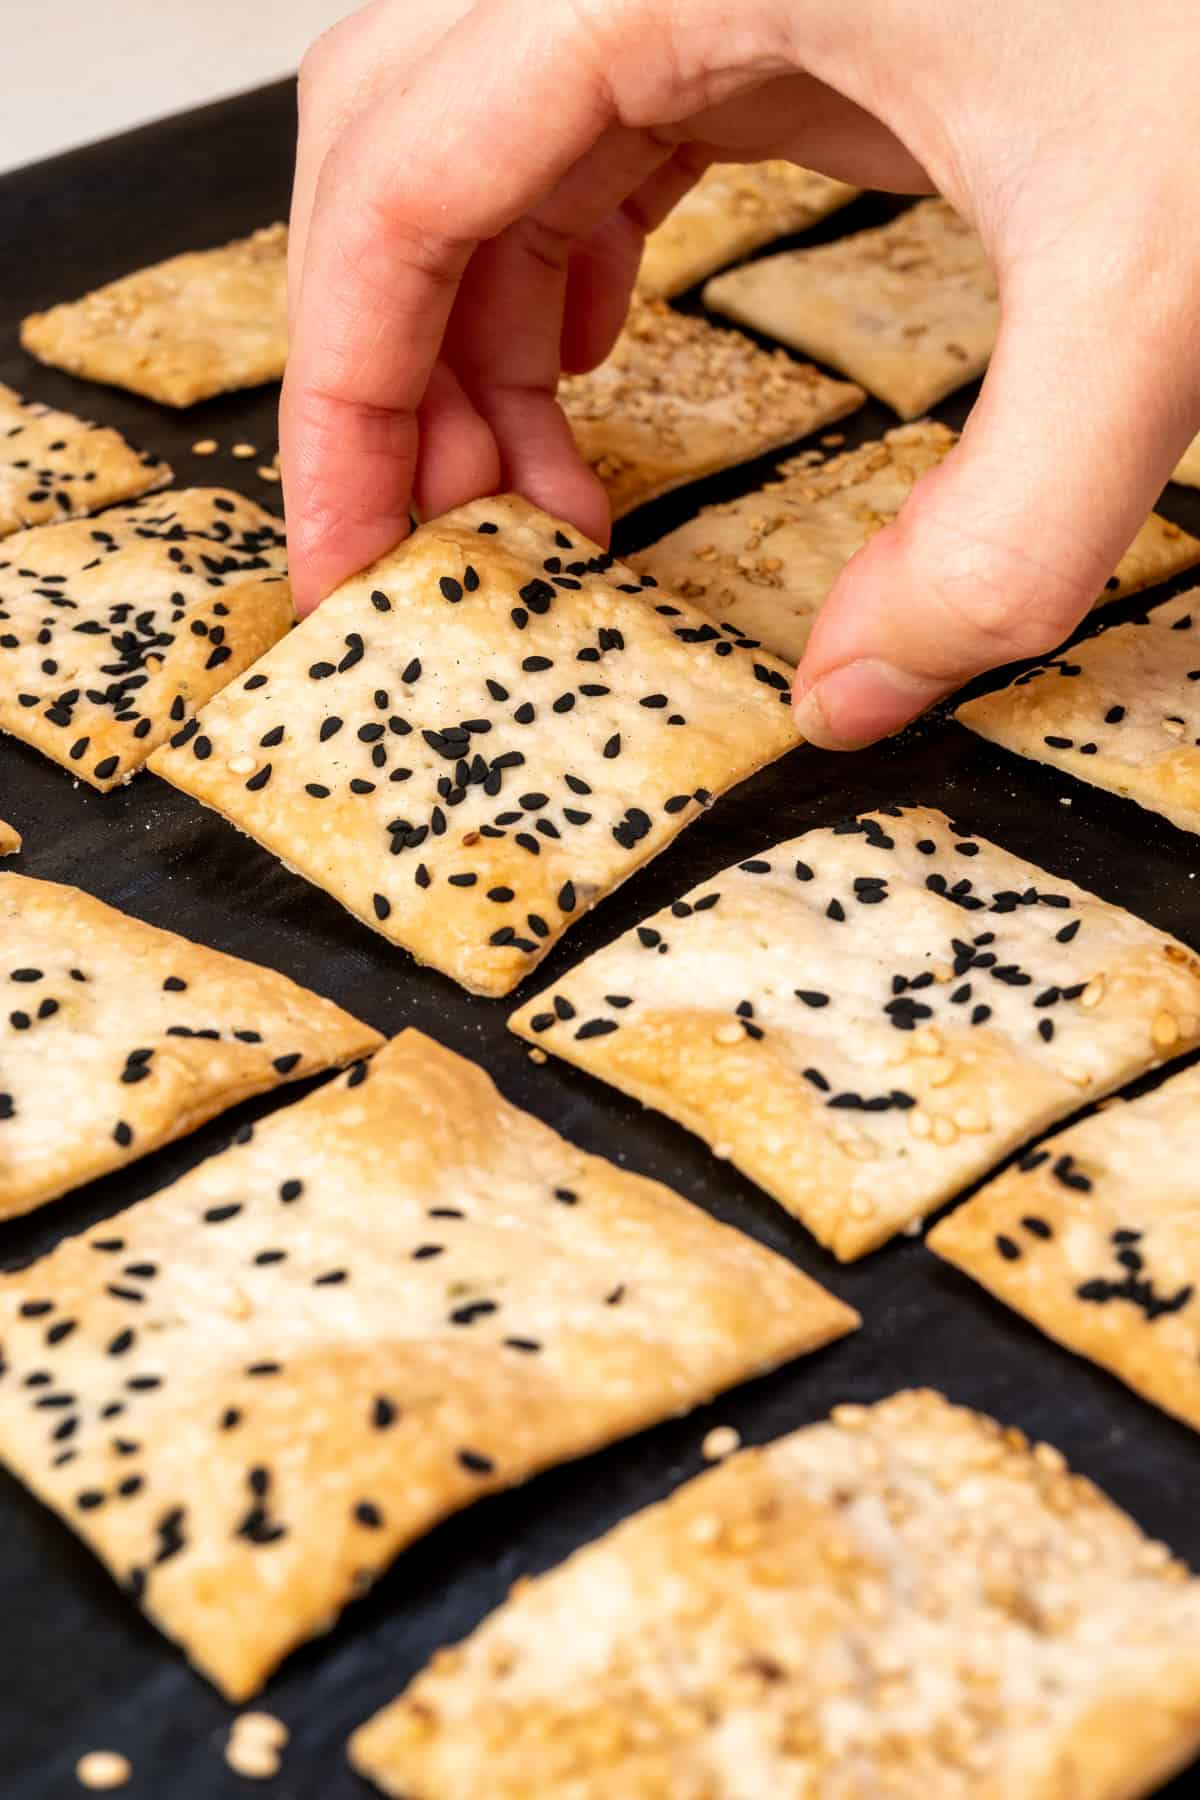 A hand picks up a freshly baked cracker from a baking tray.